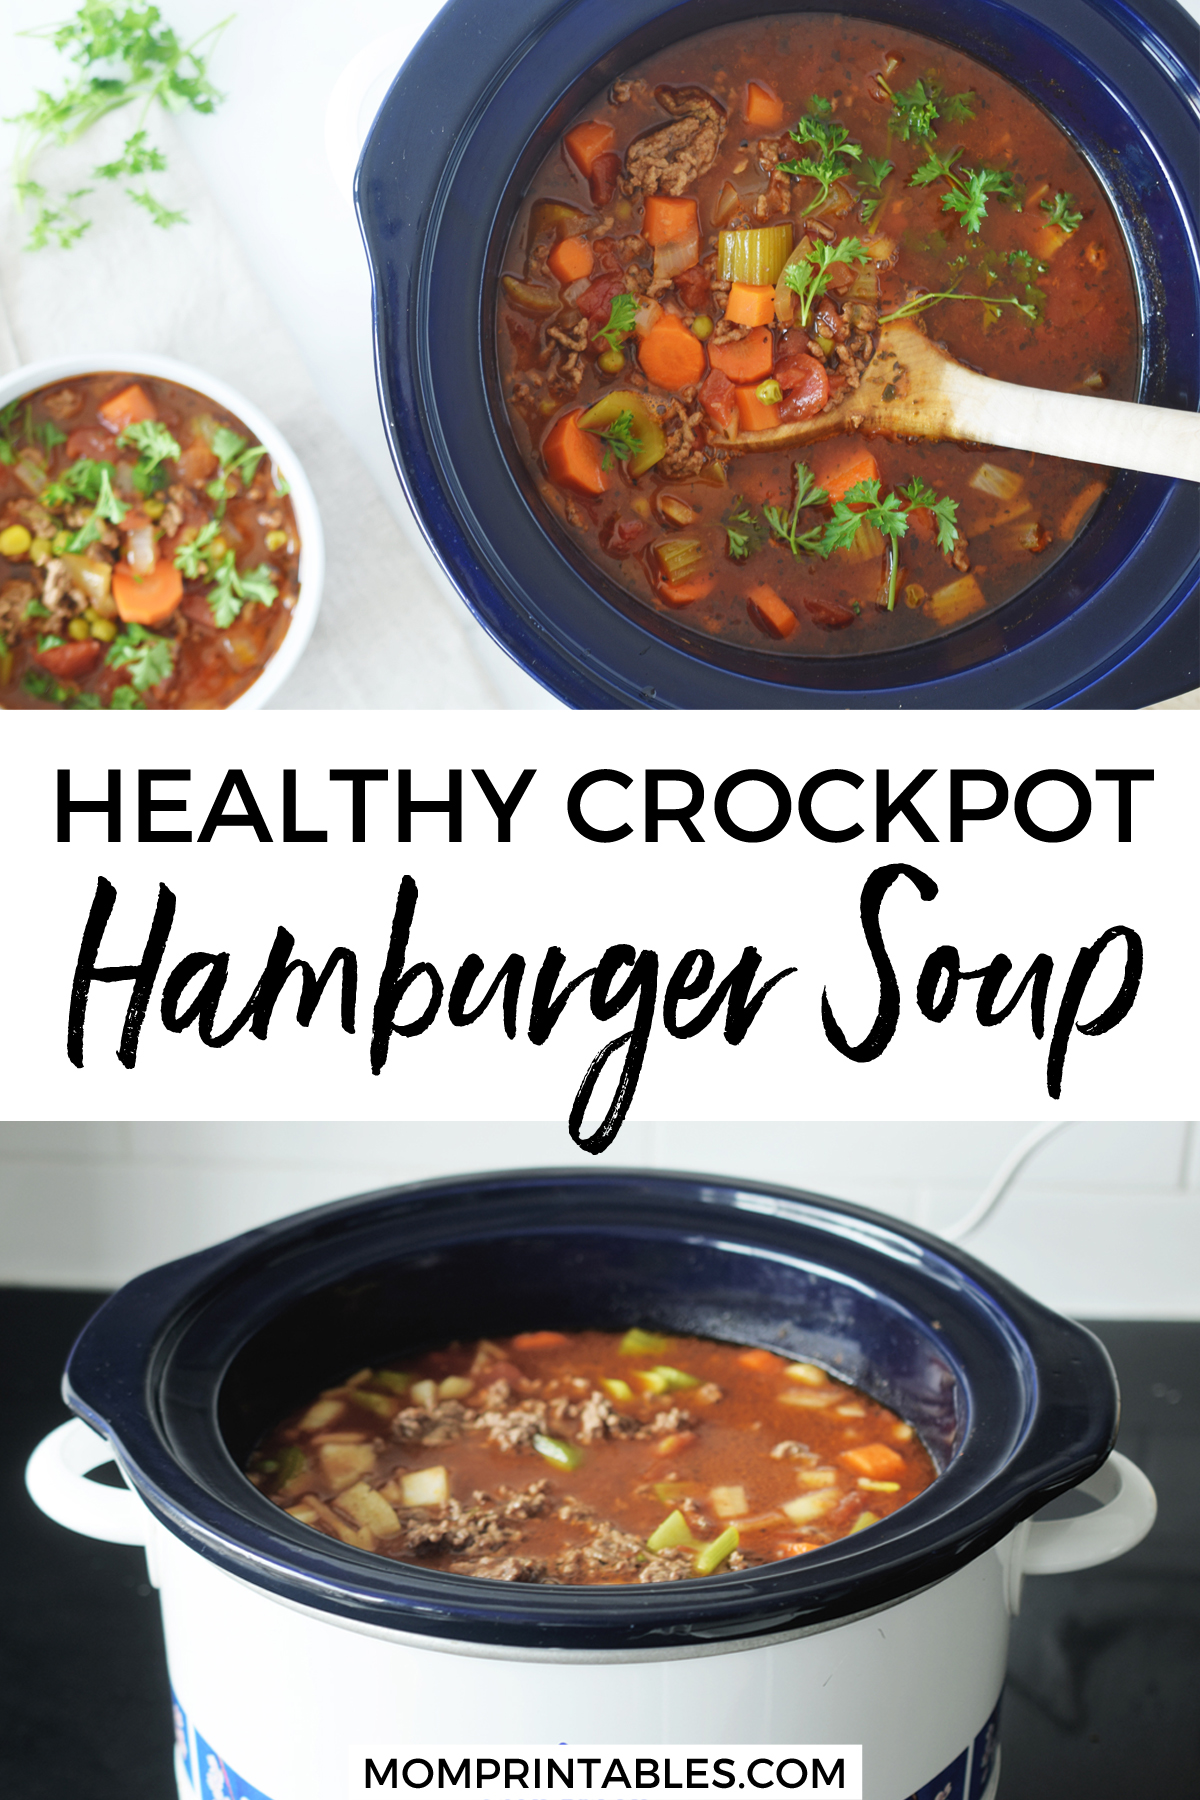 Easy Healthy  Crockpot Hamburger Soup | slow cooker | freezer meal | recipe | healthy | slow cooker | tomato | hearty | with beef broth | keto | low carb | old fashioned | gluten free | crockpot | slow cooker | paleo | vegetable | simple | poor mans | with veg | quick | for a crowd #crockpot #slowcooker #hamburgersoup #soup #crockpot #freezermeal